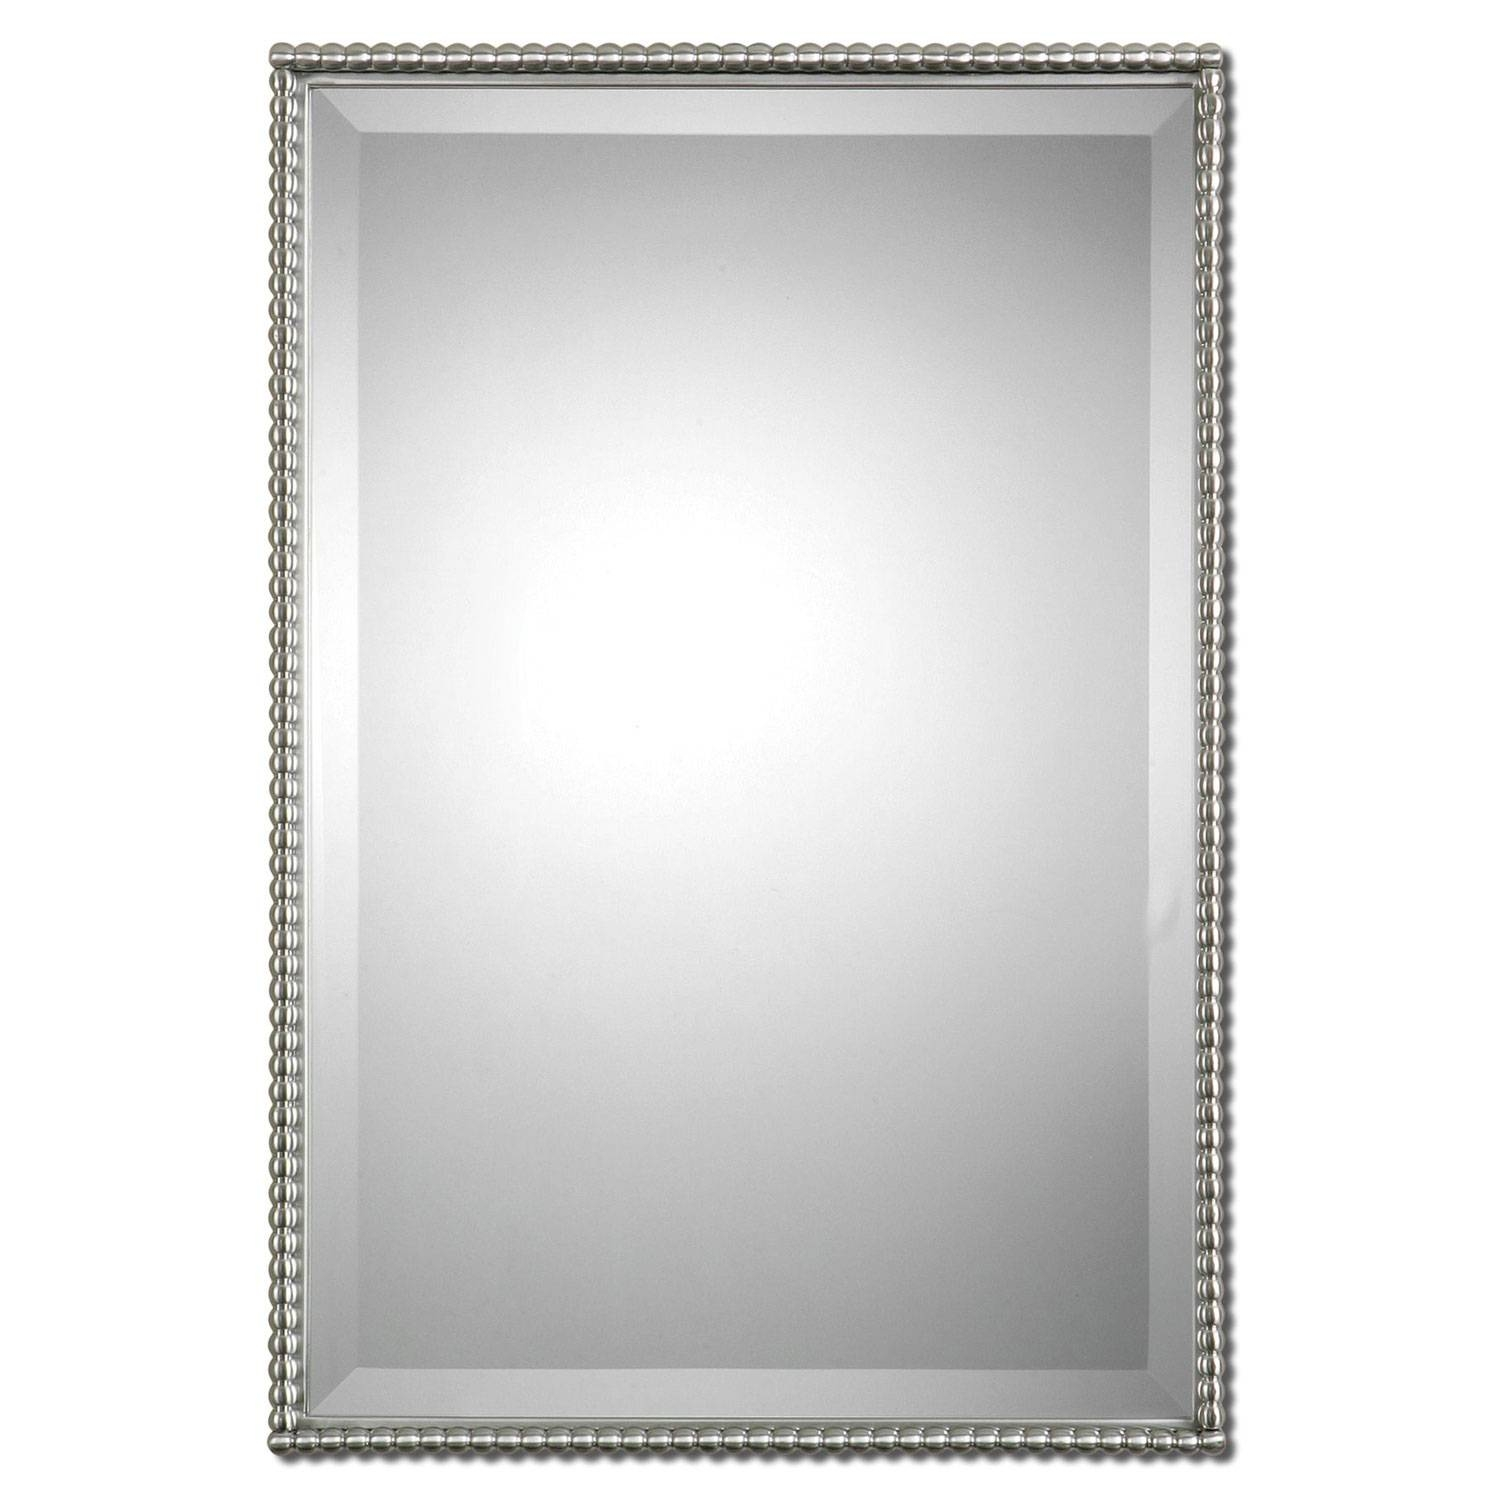 Bathroom Mirrors Silver Frames 24x30